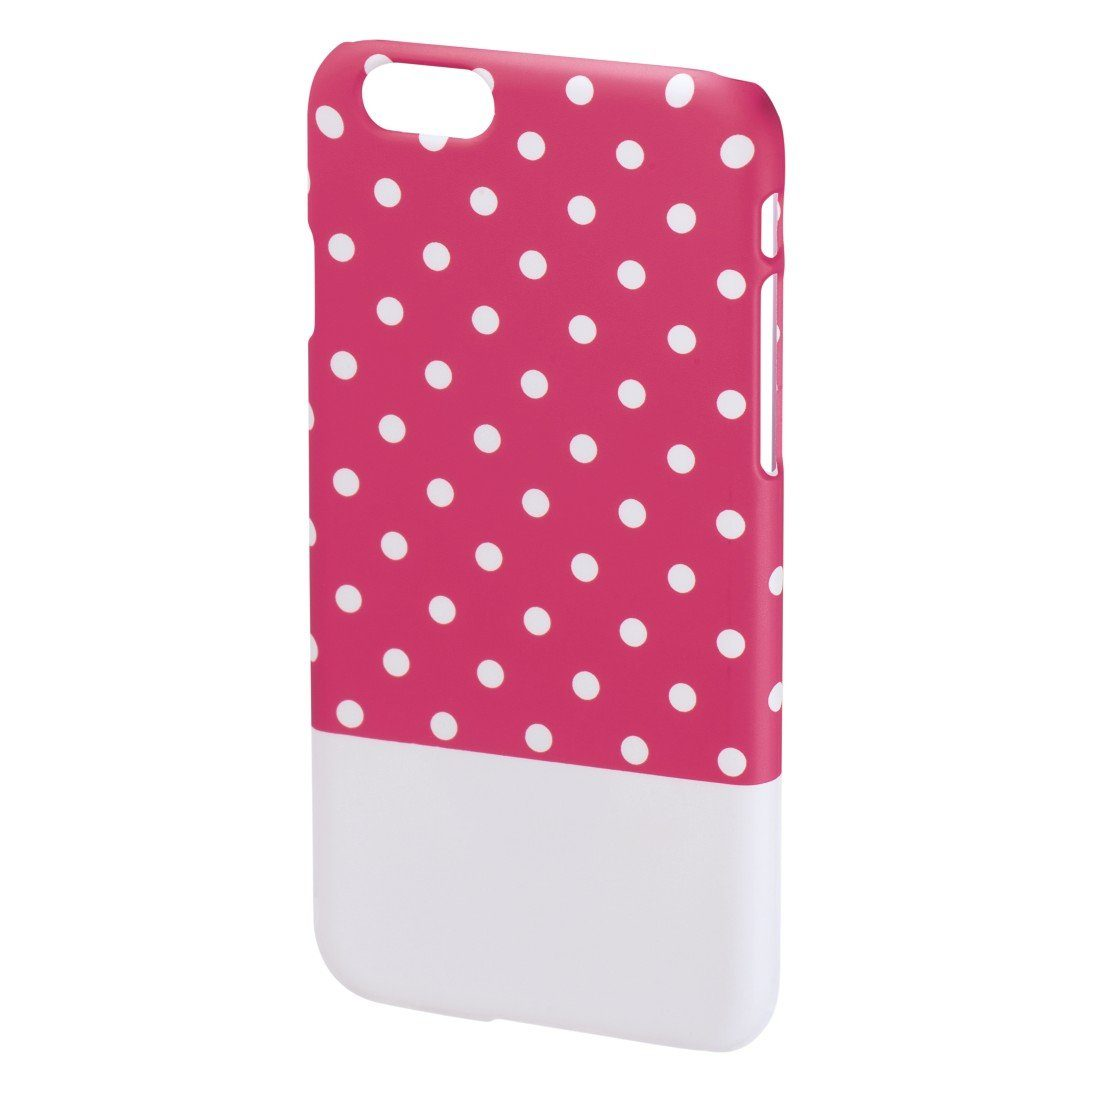 Hama Cover Lovely Dots für Apple iPhone 6, Pink/Weiß